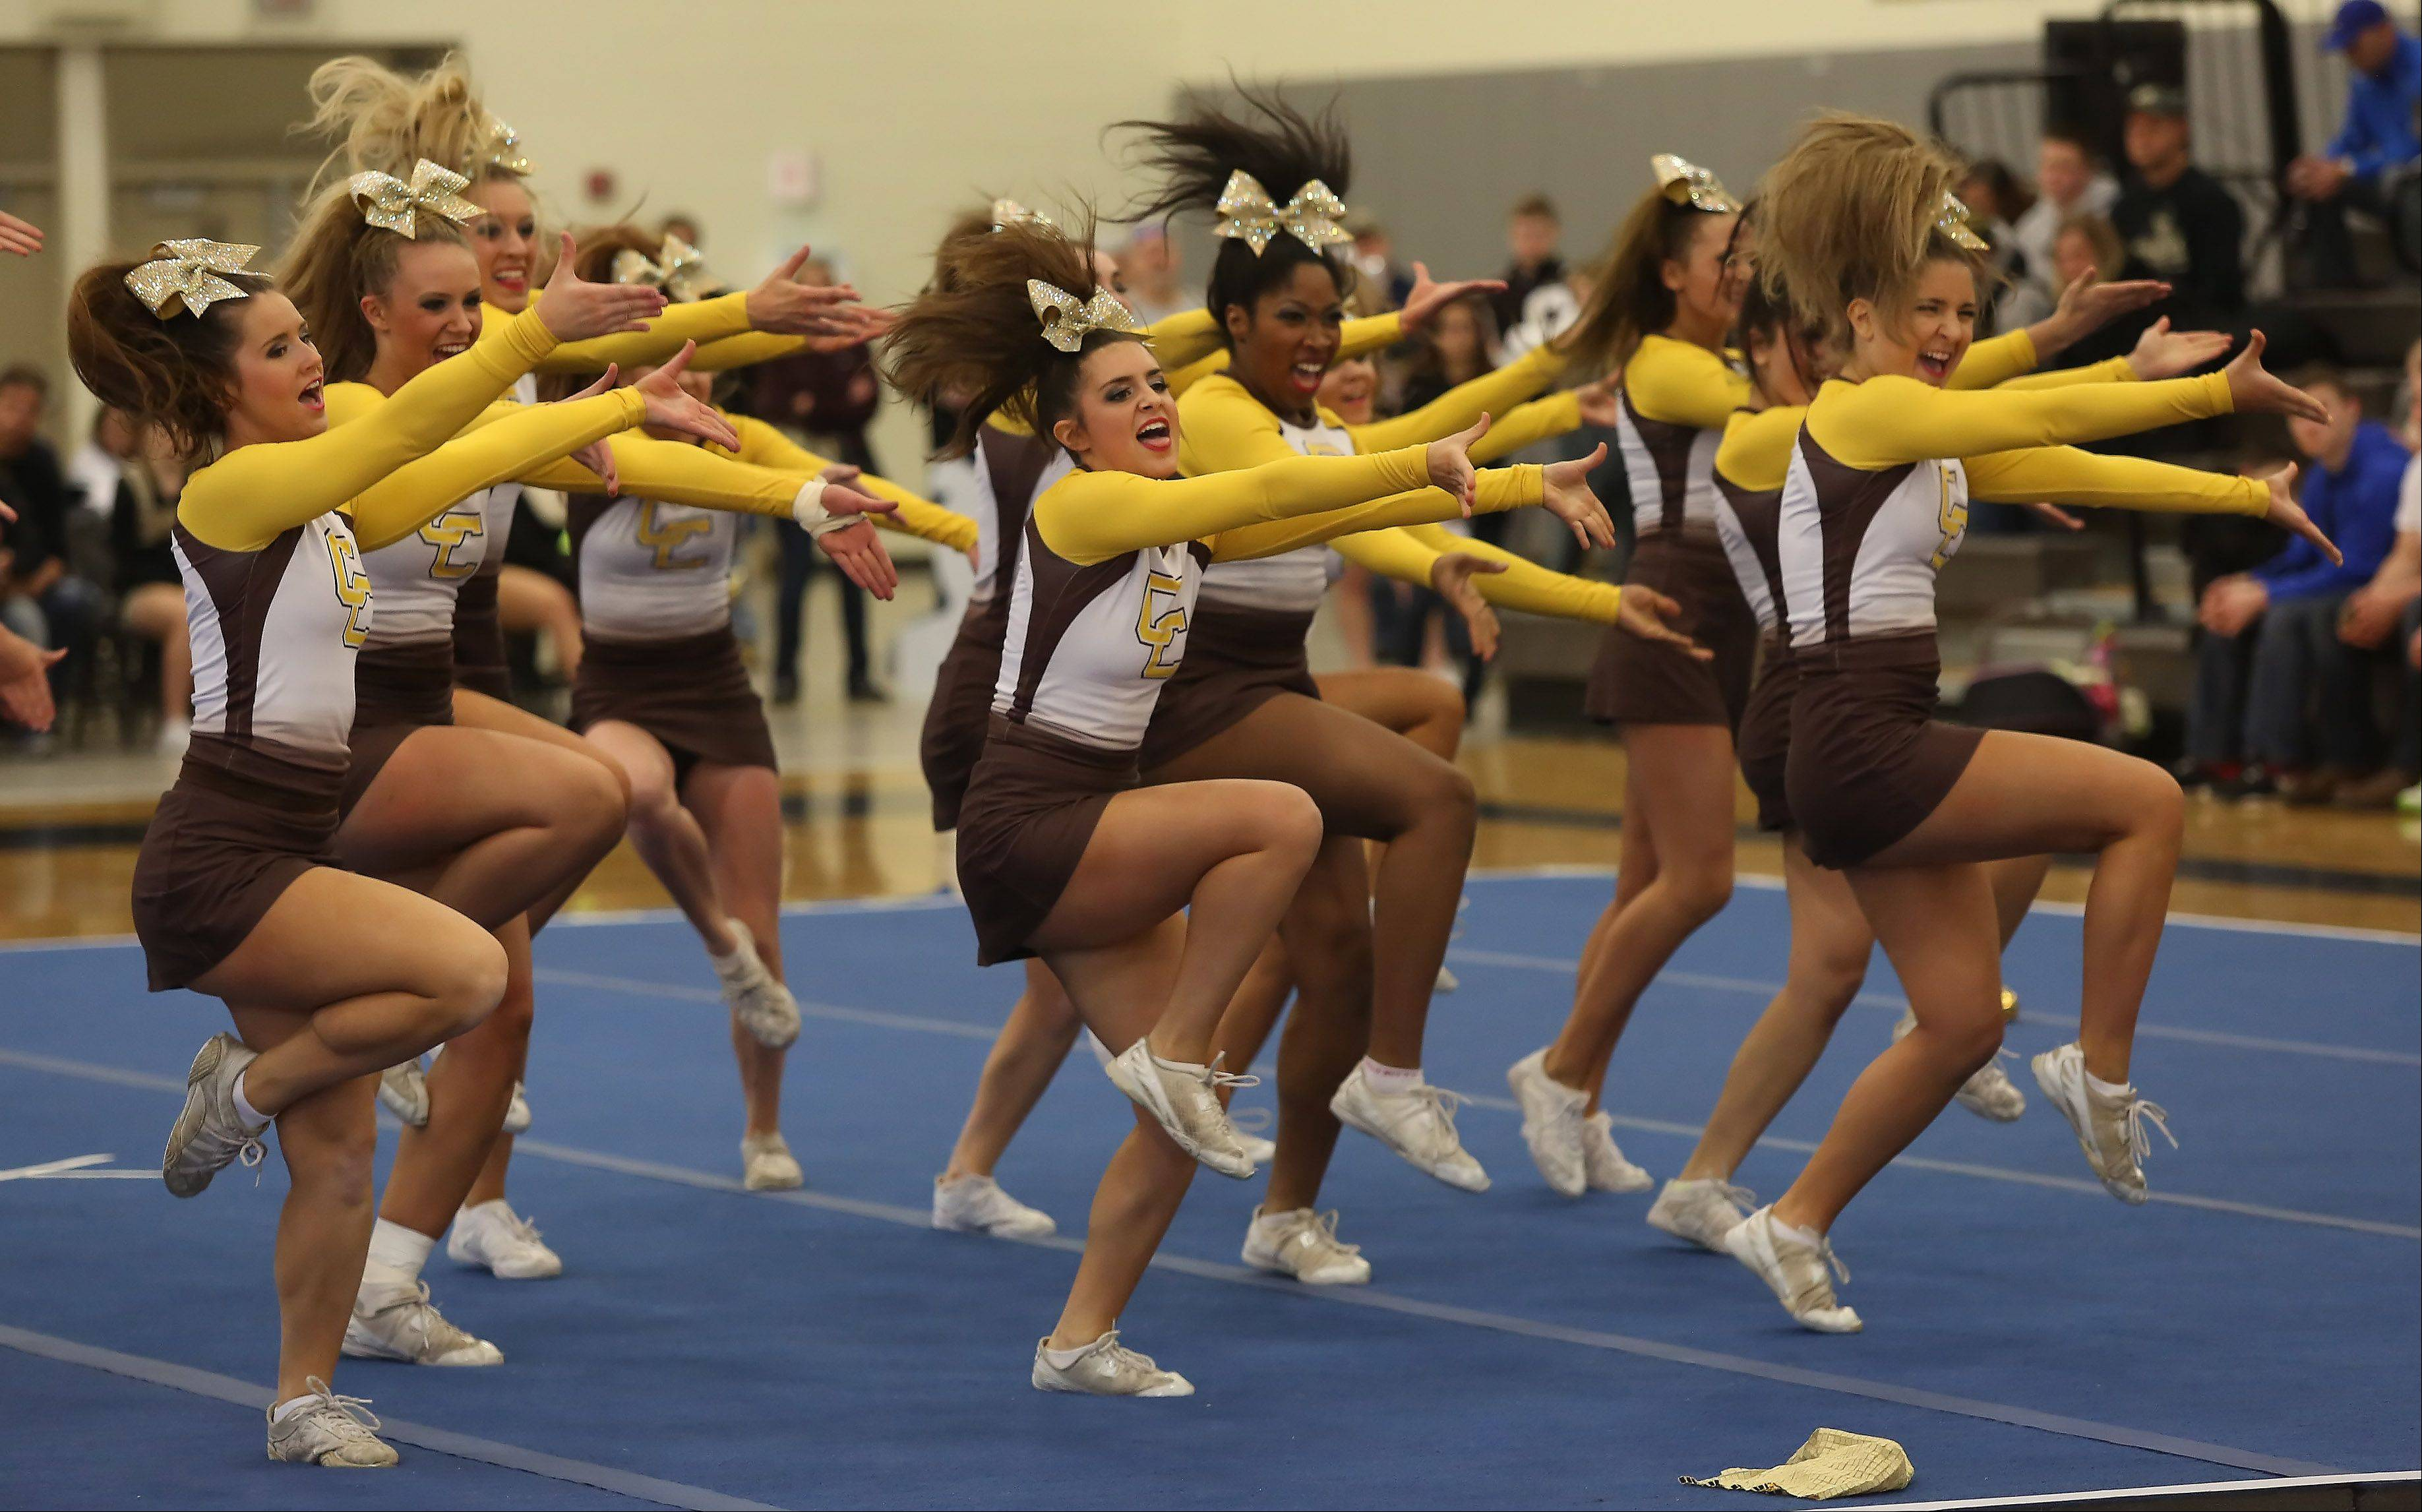 Carmel Catholic High School competes in the Large Team category Sunday during the IHSA Cheerleading Sectional at Grayslake North High School.